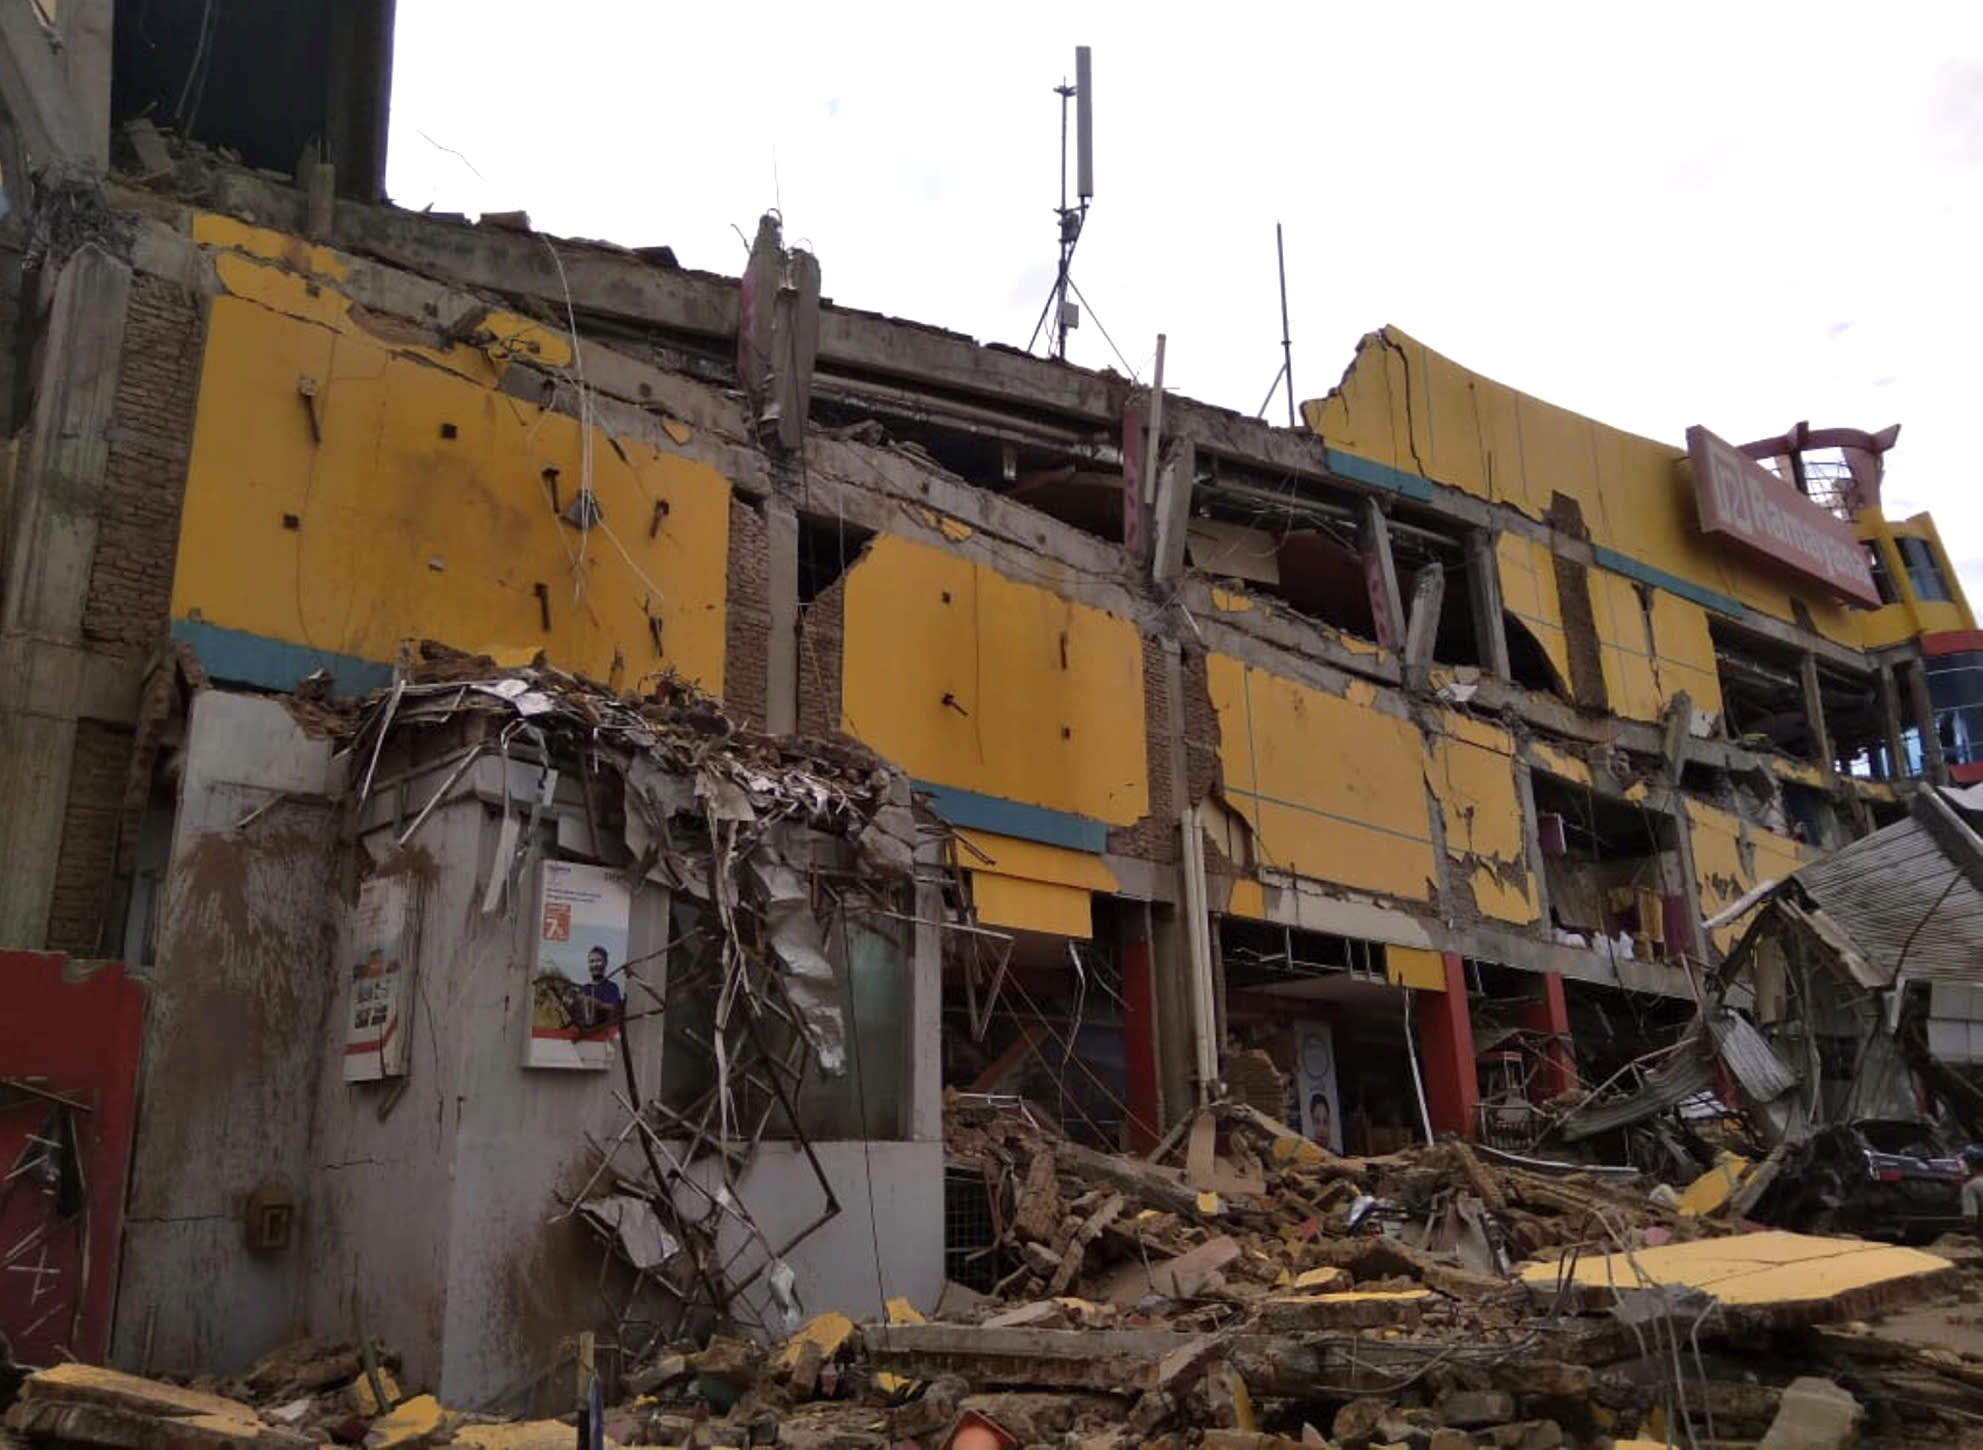 A department store building is seen heavily damaged by earthquake in Palu, Central Sulawesi, Indonesia, Saturday, Sept. 29, 2018. The powerful earthquake rocked the Indonesian island of Sulawesi on Friday, triggering a 3-meter-tall (10-foot-tall) tsunami that an official said swept away houses in at least two cities. (AP Photo/Rifki)